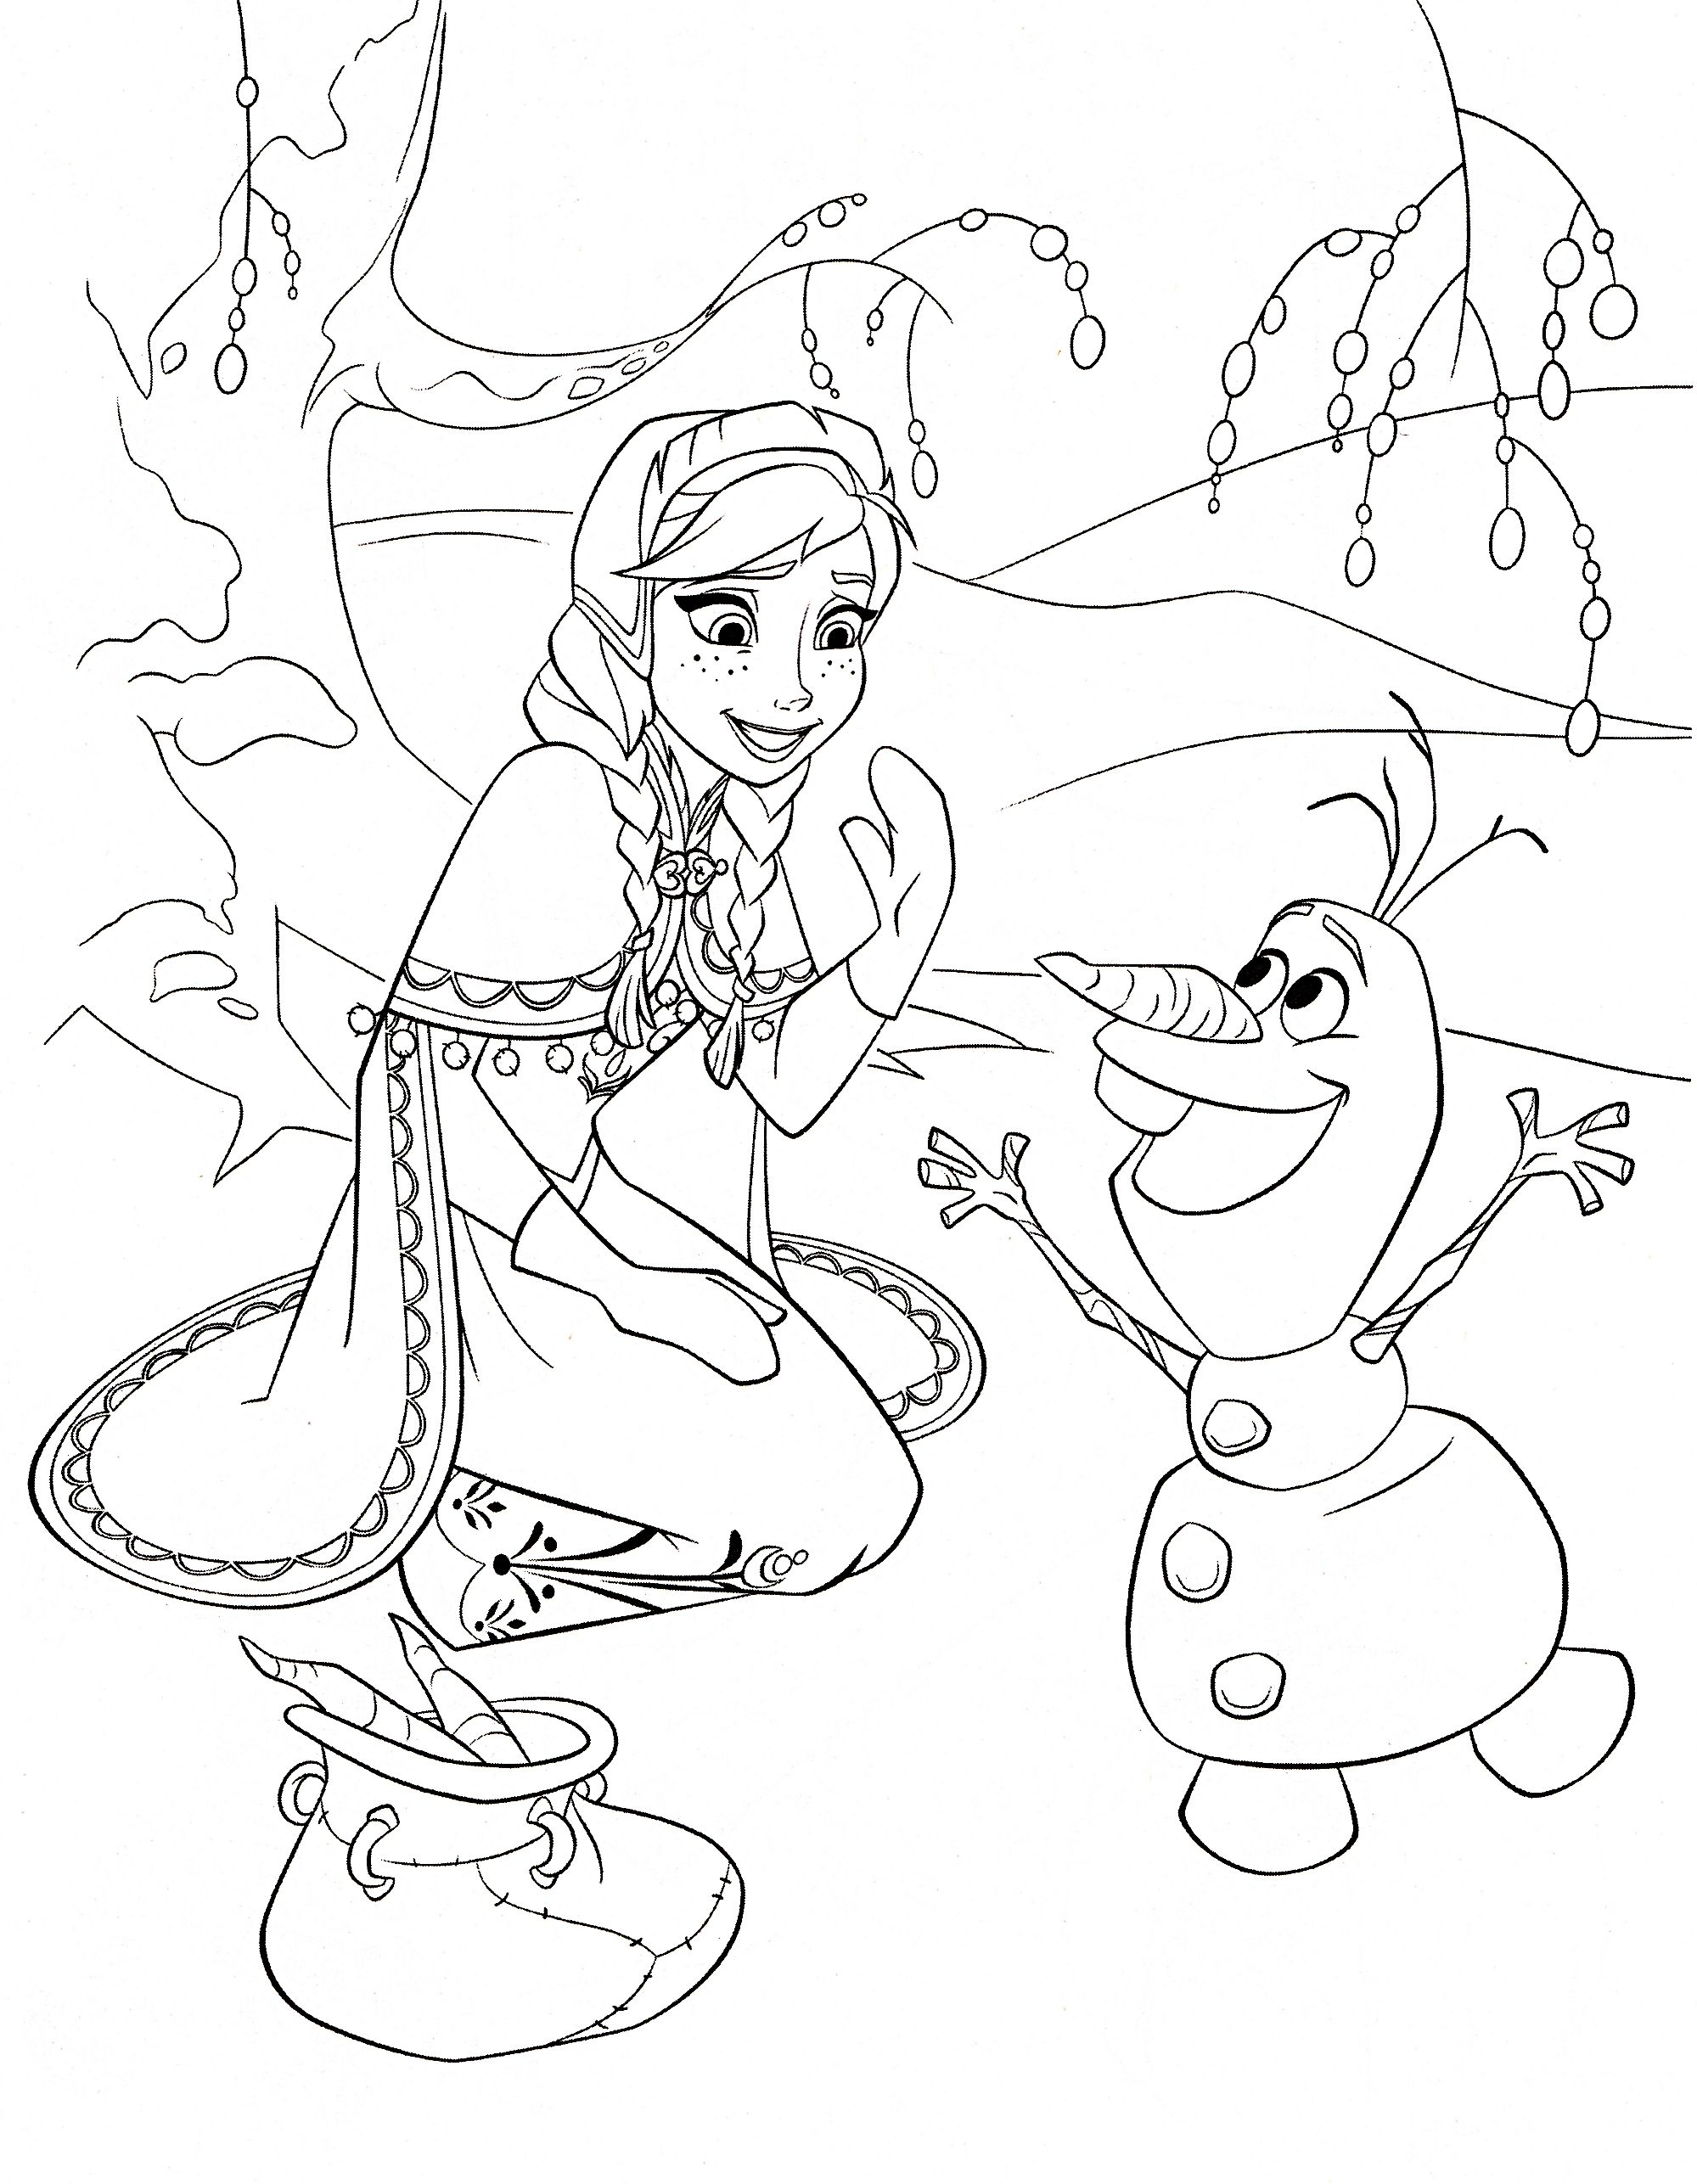 Die Eiskönigin Ausmalbilder Anna Und Elsa Als Kinder : Free Frozen Printable Coloring Activity Pages Plus Free Computer